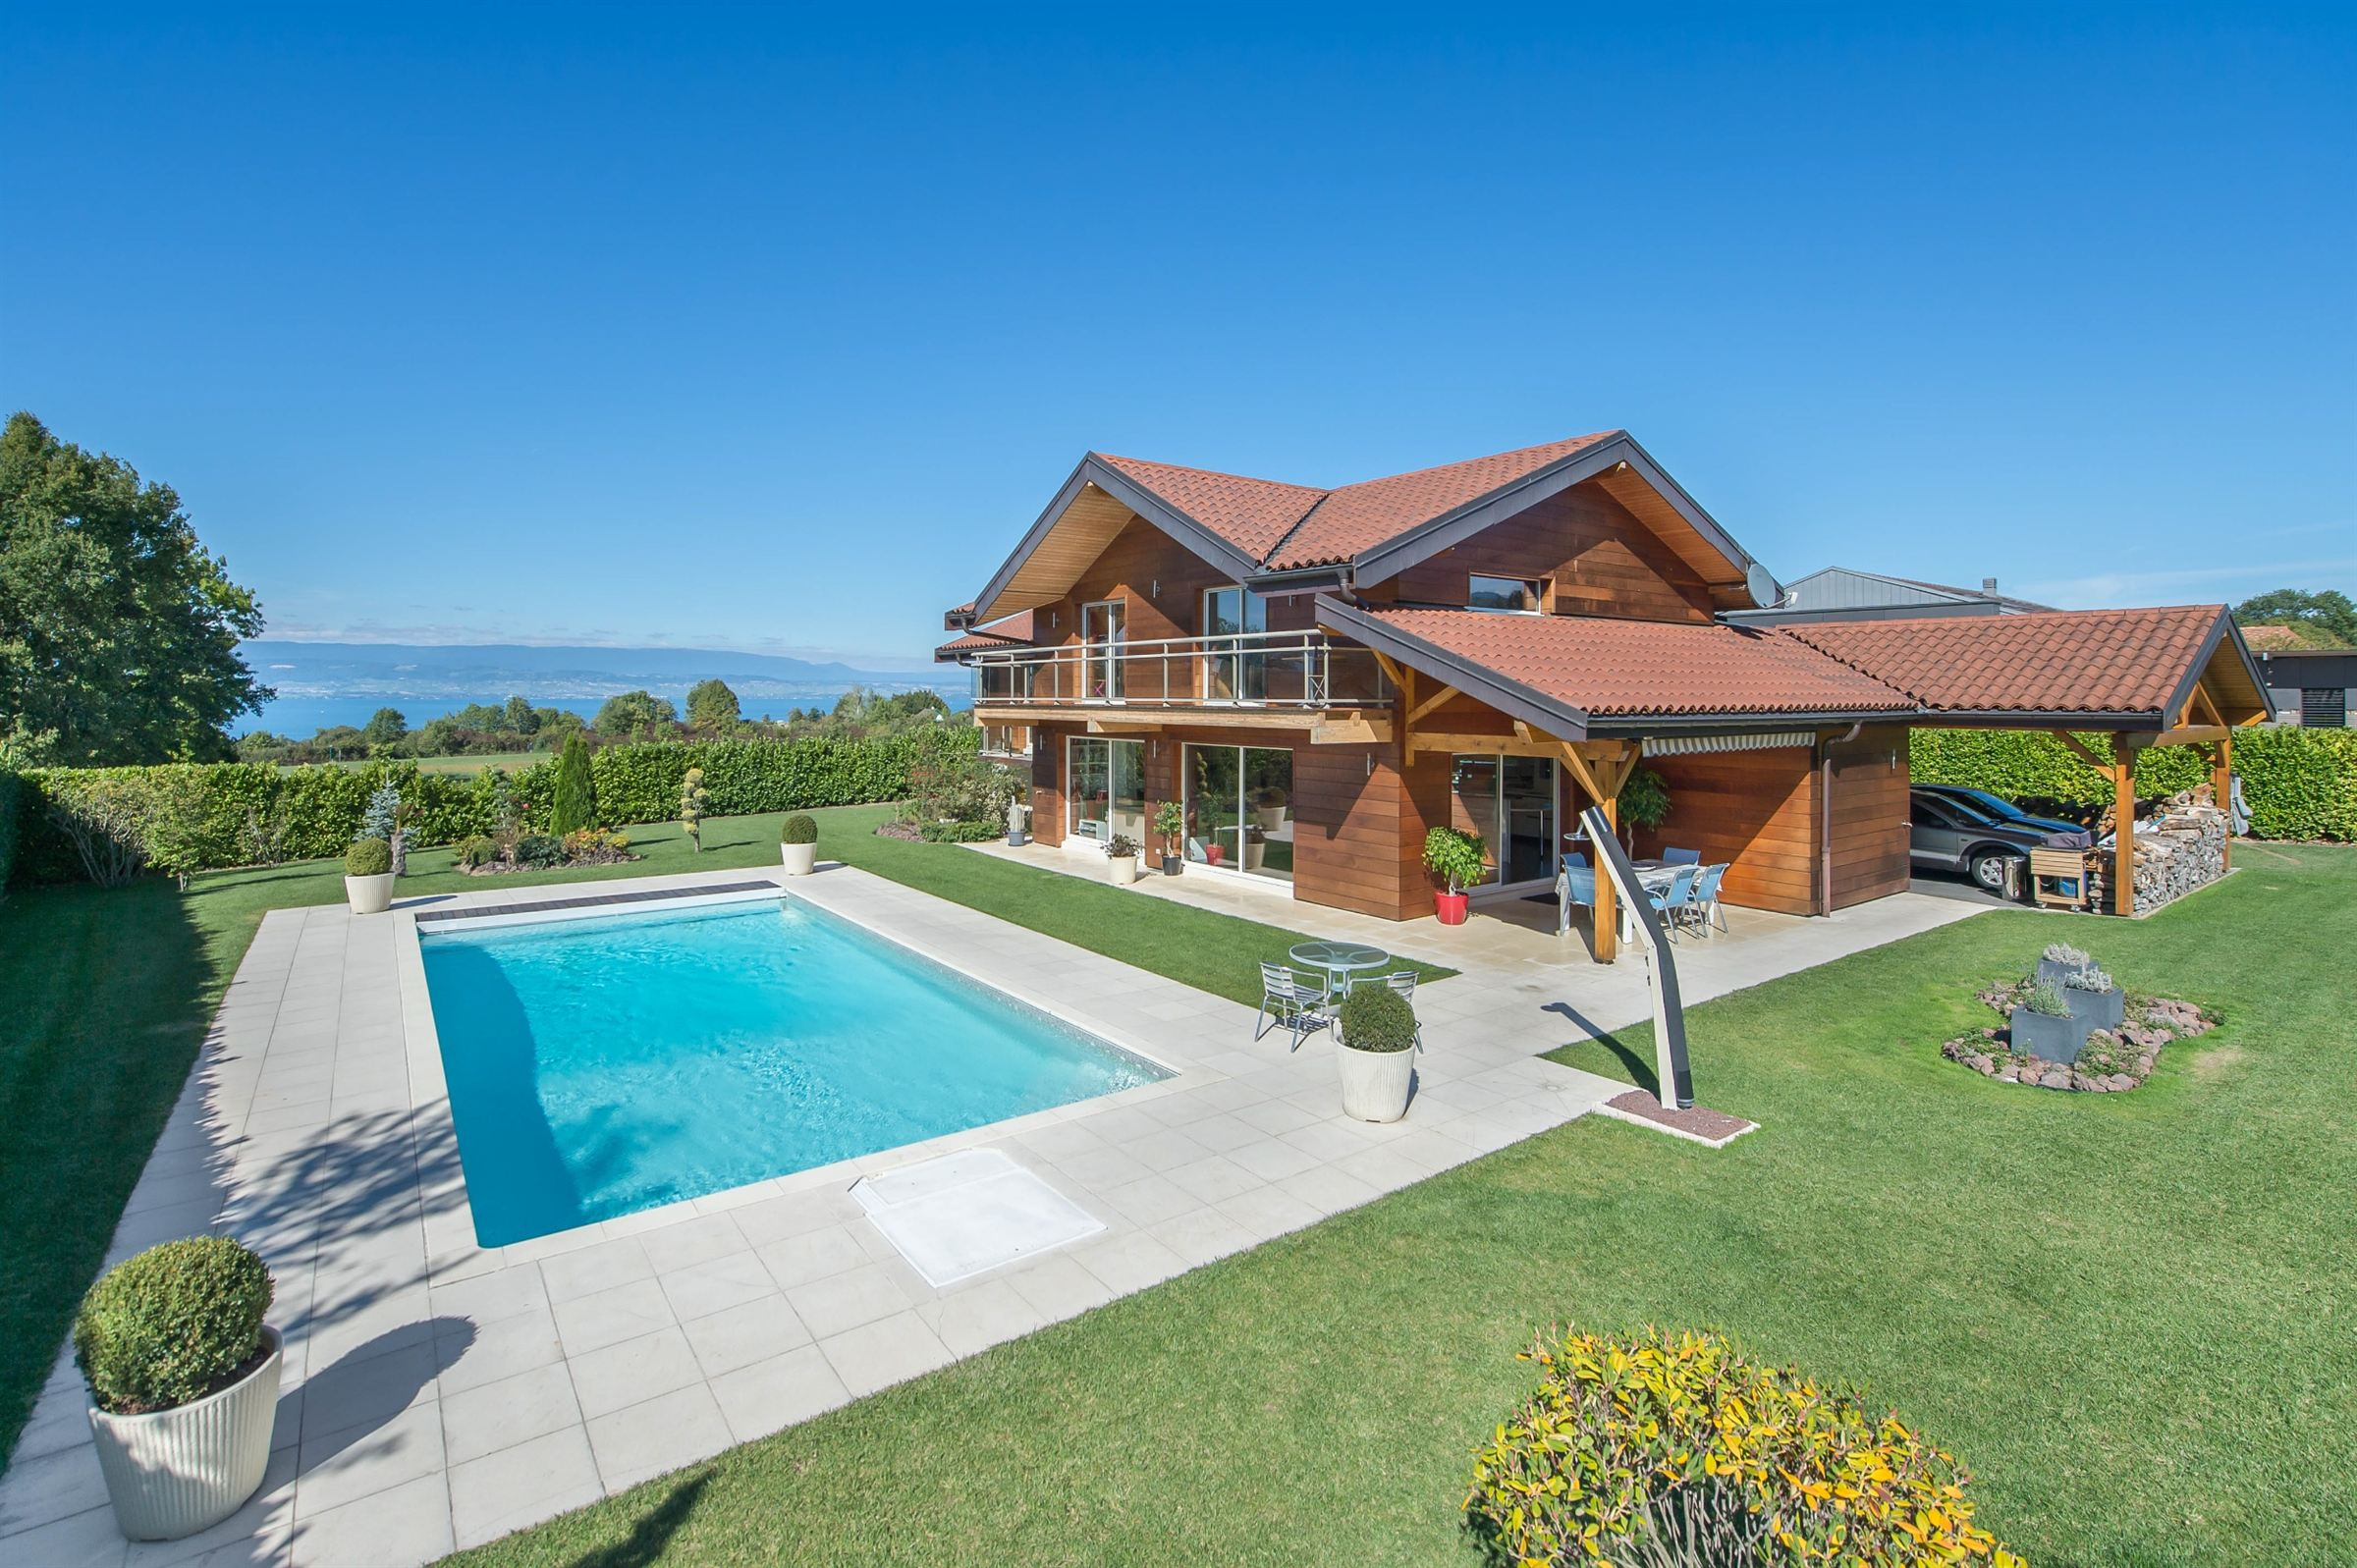 Single Family Home for Sale at Sciez : villa with pool Sciez, Rhone-Alpes, 74140 France